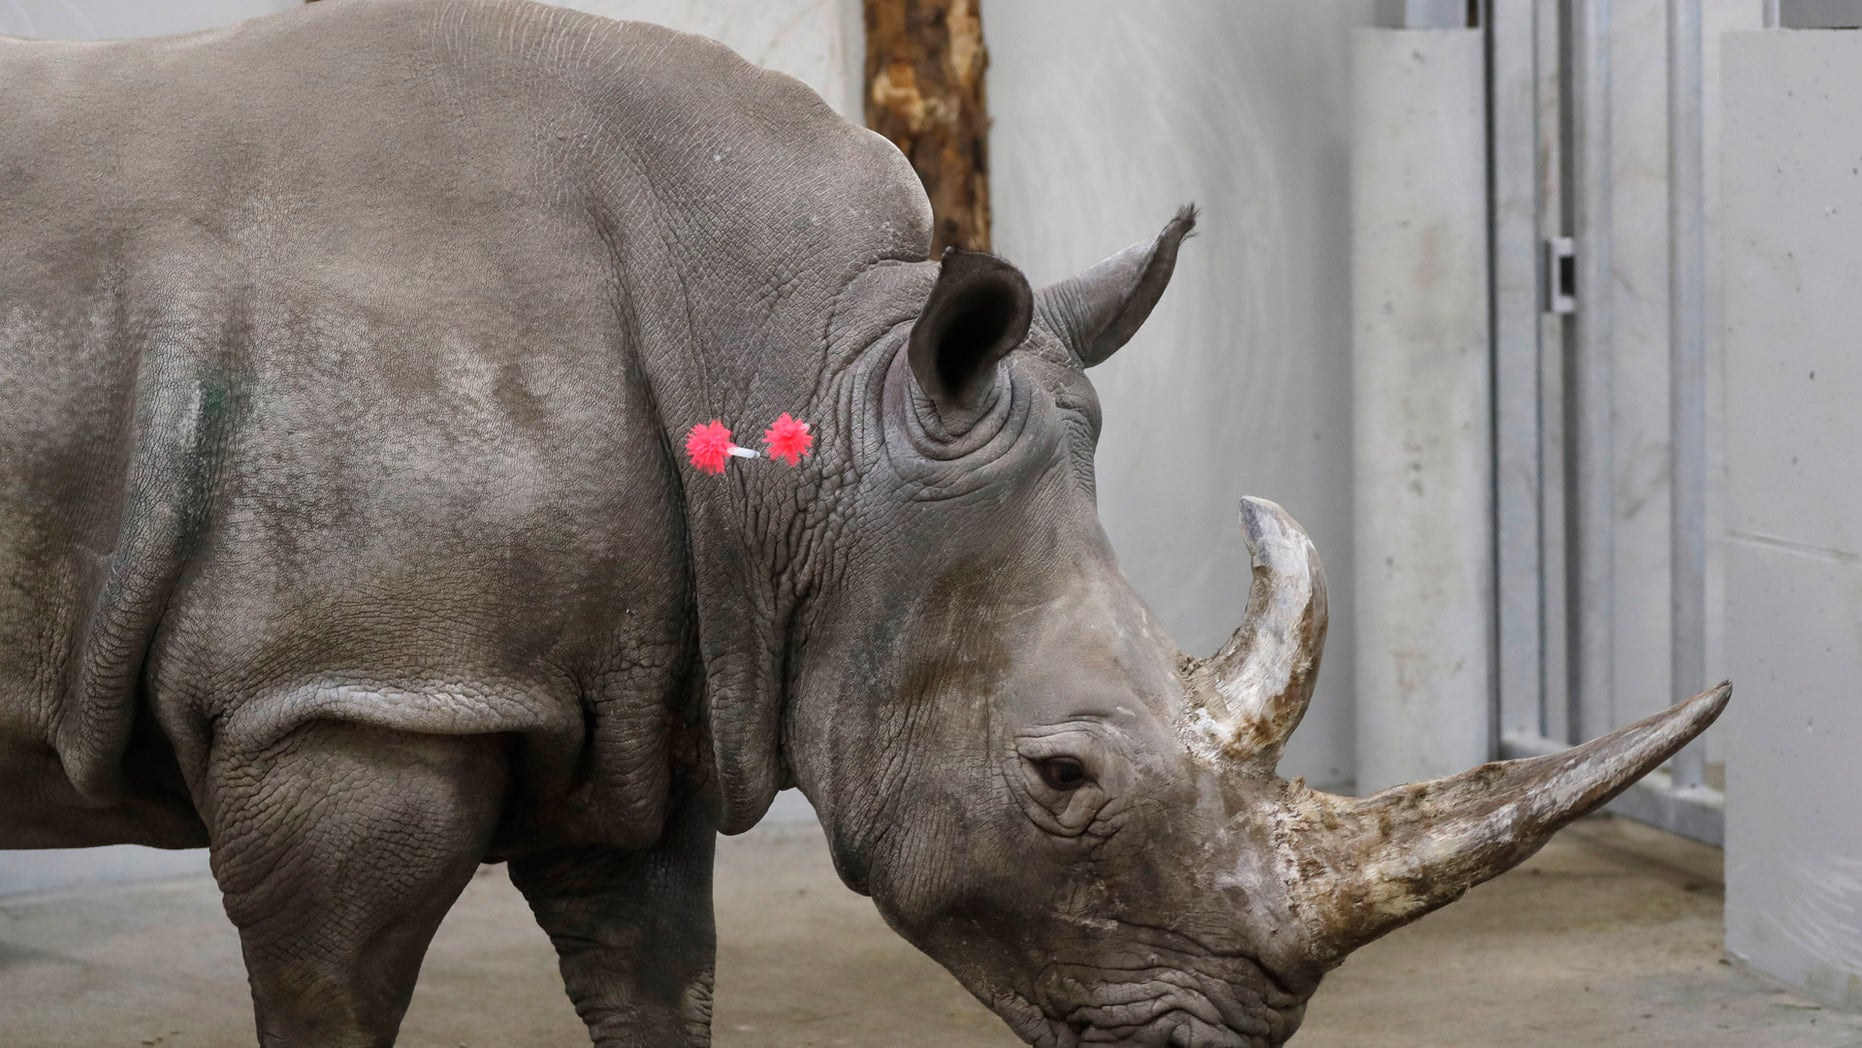 FILE - In this Wednesday, Feb. 13, 2019 file photo, female southern white rhino, 17-year-old Hope, is shot with tranquilizing darts, so a team of experts can harvest her eggs, at a zoo park in Chorzow, Poland. Scientists in Europe said Tuesday June 25, 2019, they have successfully transferred a test tube rhino embryo back into the female whose eggs were fertilized in vitro, as part of an effort to save another nearly extinct sub-species of the giant horned mammal. (AP Photo/Petr David Josek, File)